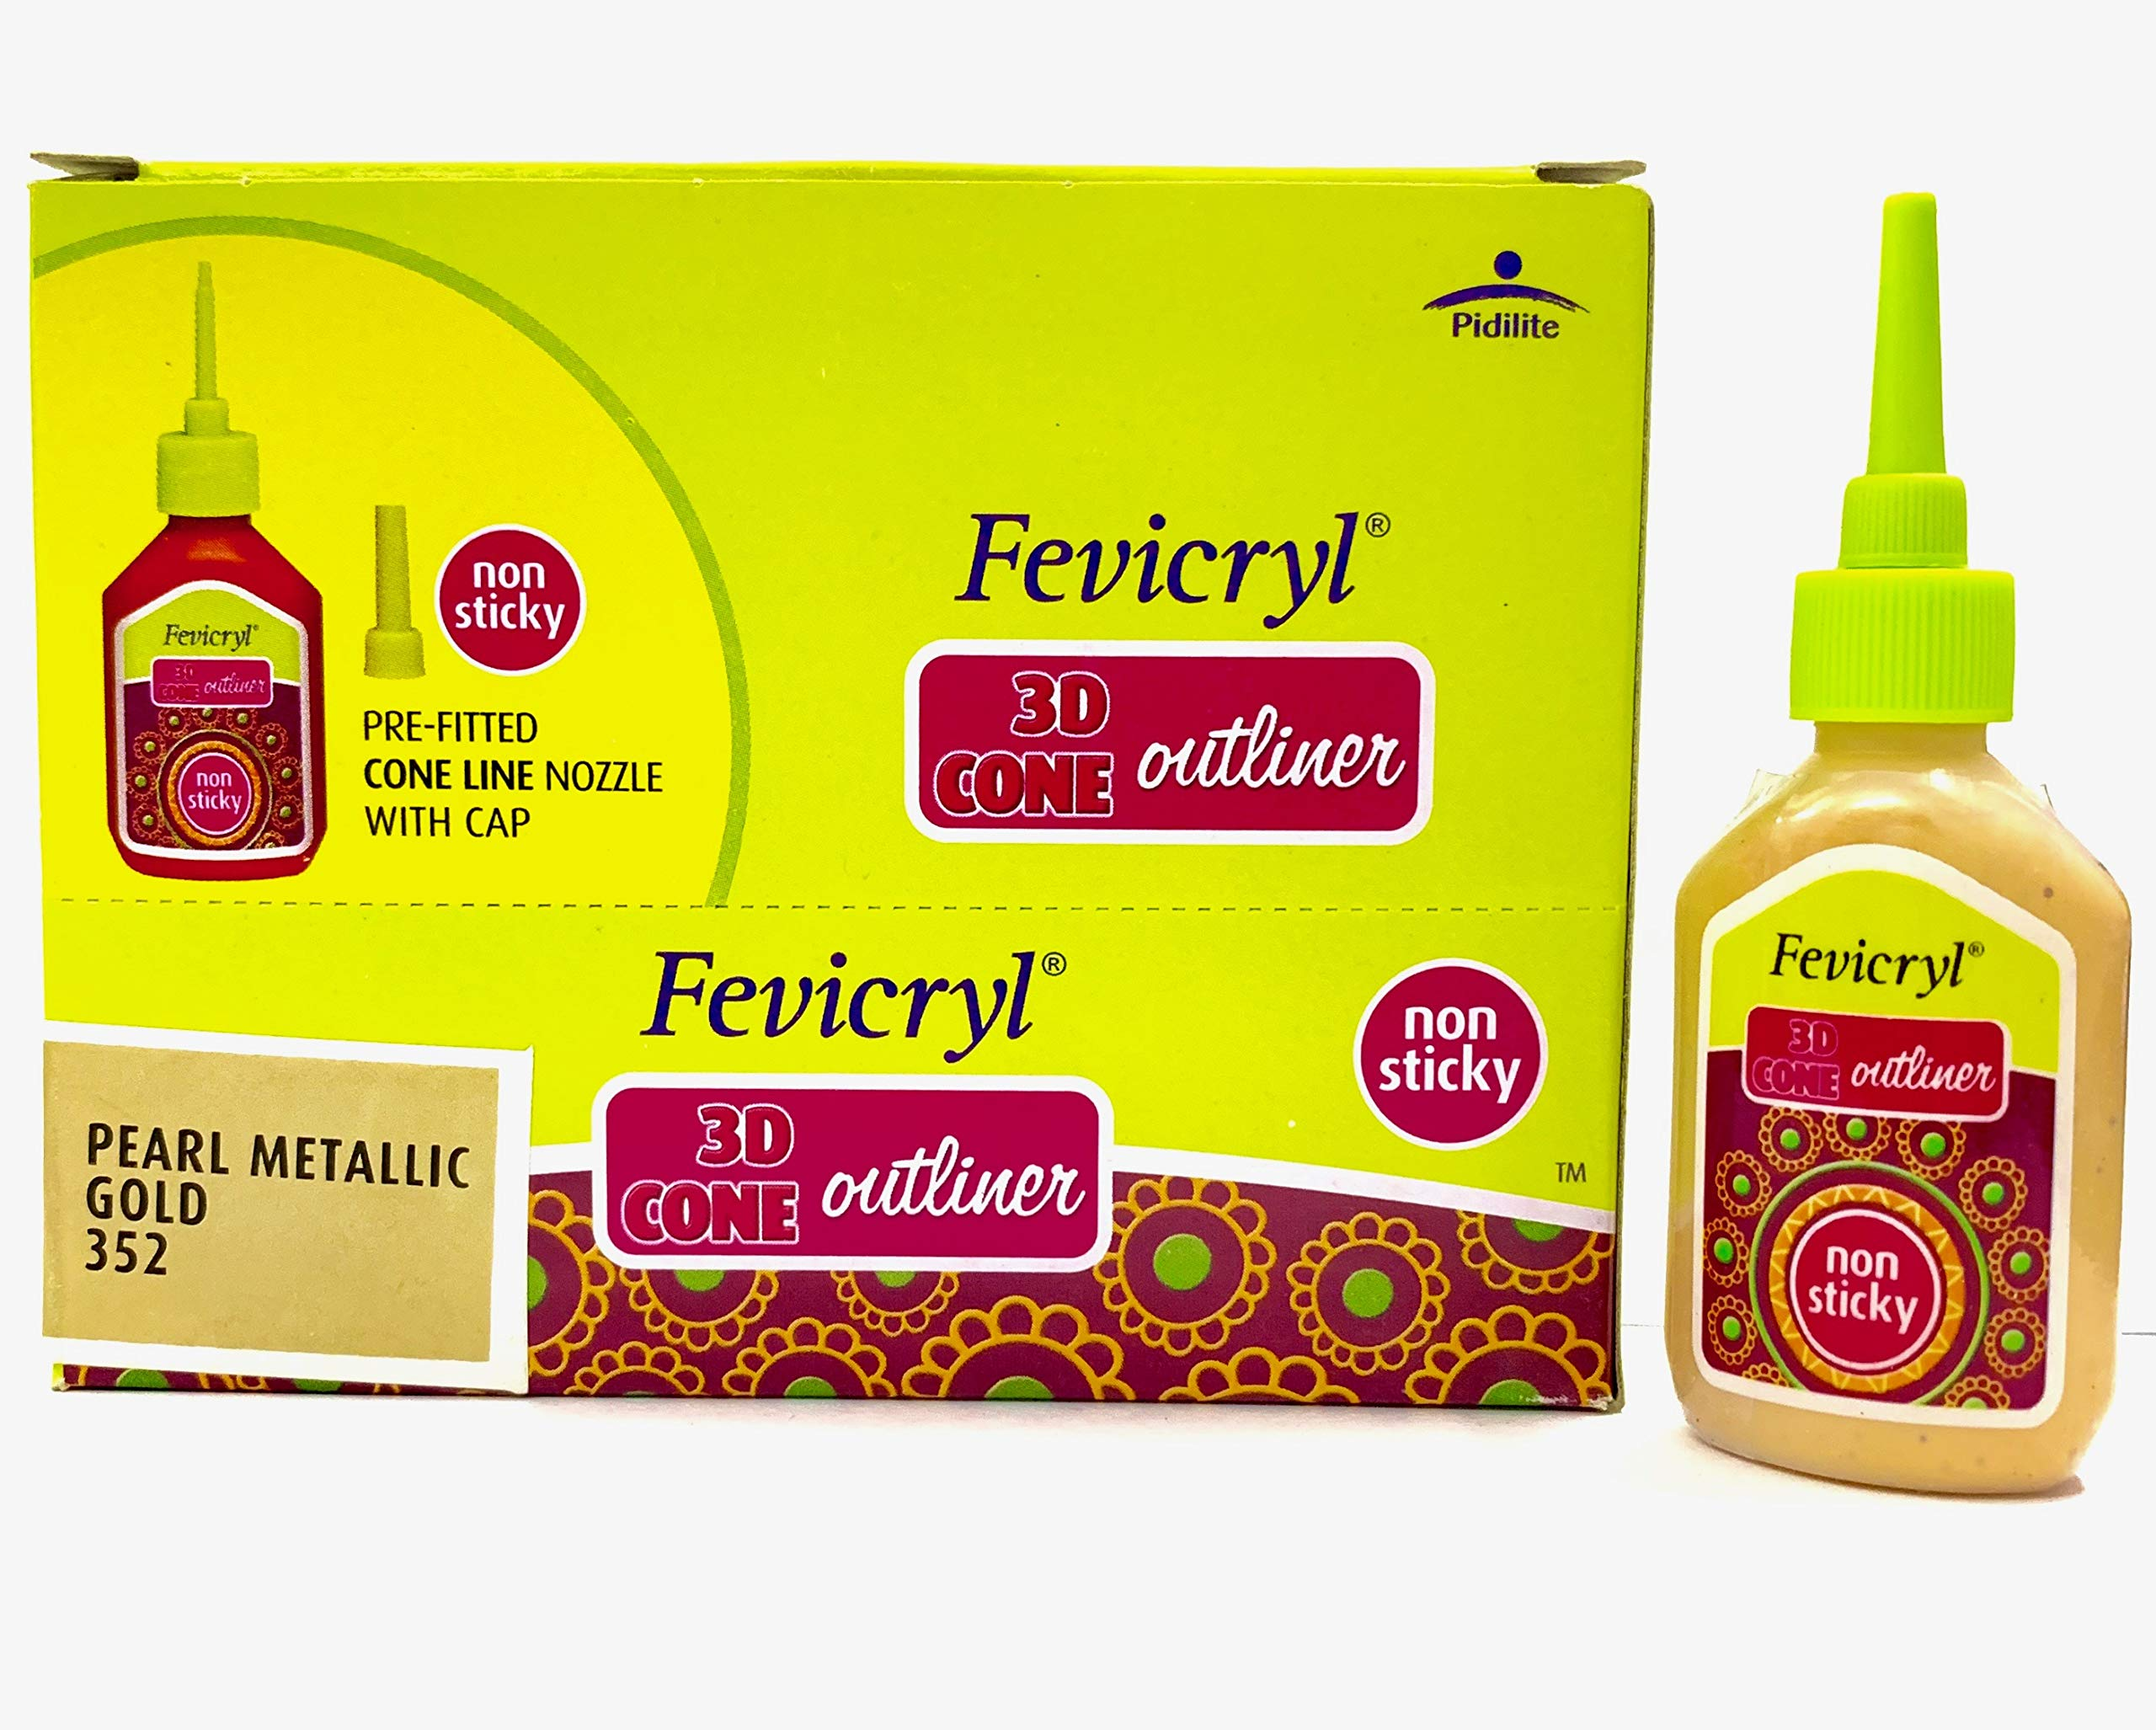 New Fevicryl Non Sticky 3D Cone Outliner Non-Toxic with Pre-Fitted Cone Line Nozzle with Cap (352) - 20ml Bottle -10 Bottle Pack - Colour - Pearl Metallic Gold- with Free 3D Keyring by Fevicryl